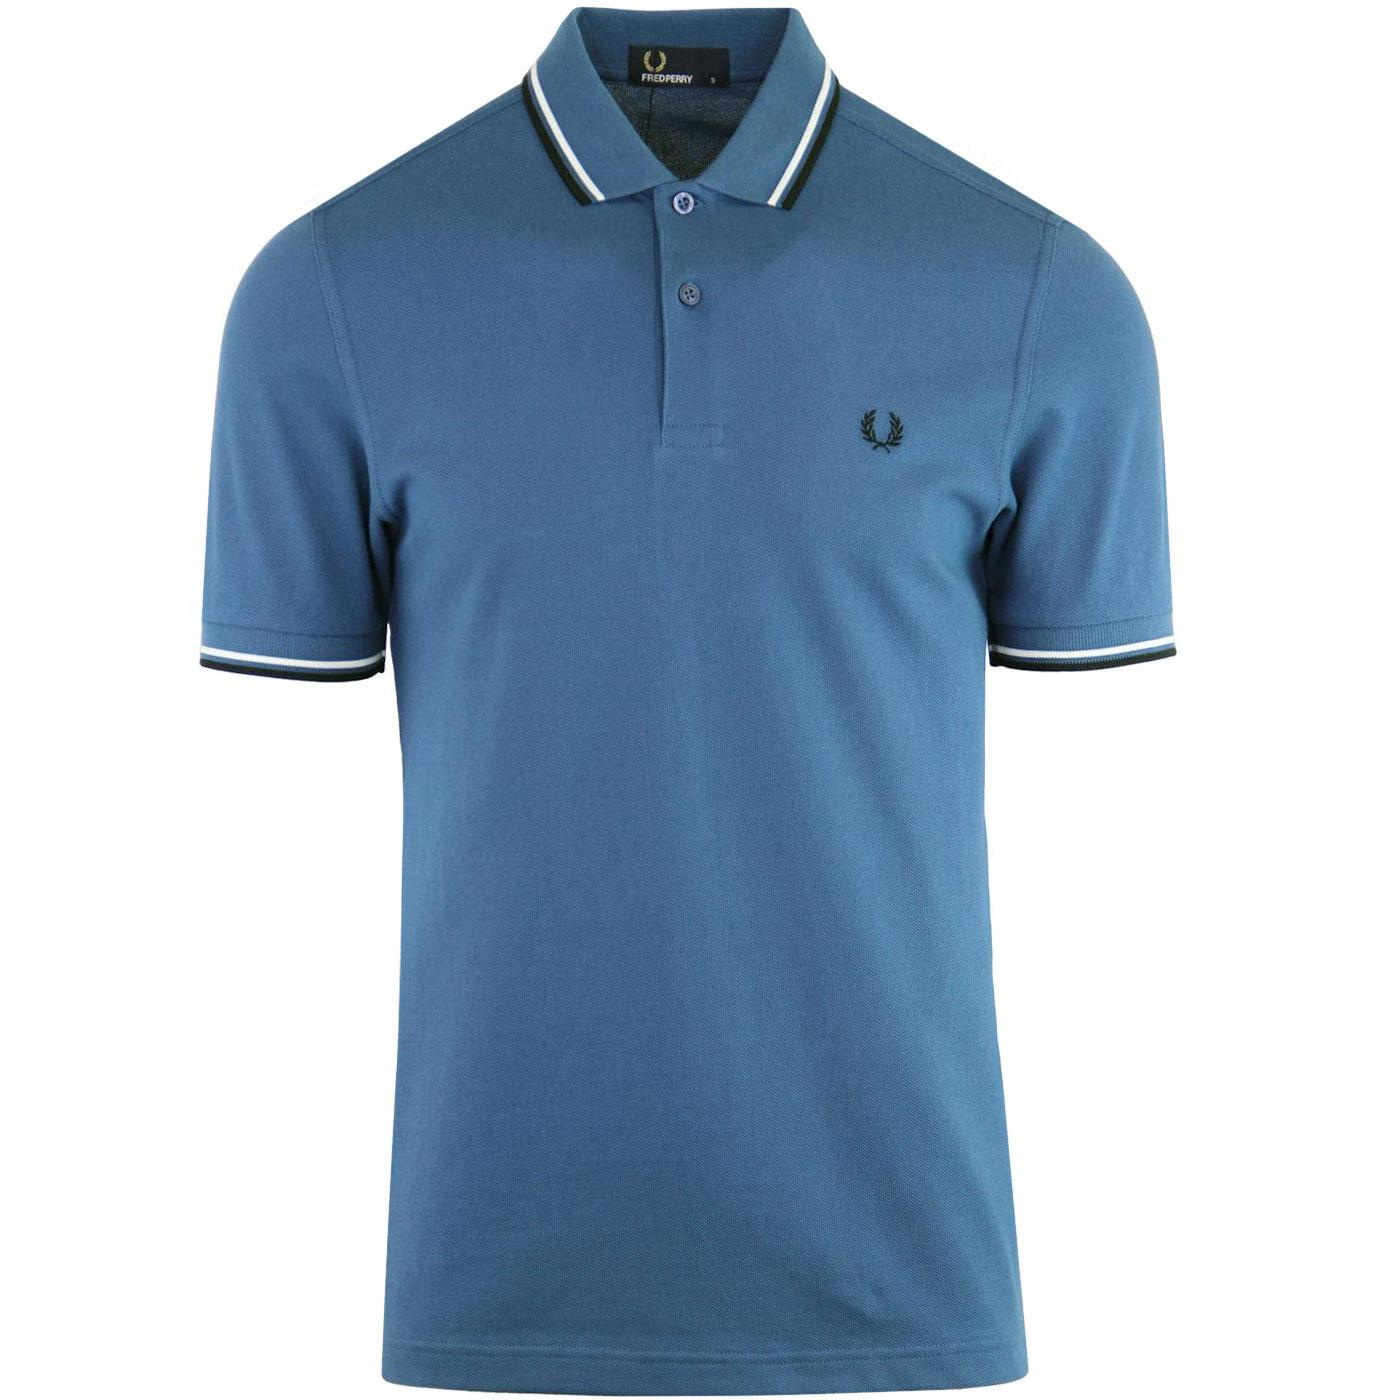 FRED PERRY M3600 Mod Twin Tipped Polo Shirt (MB)